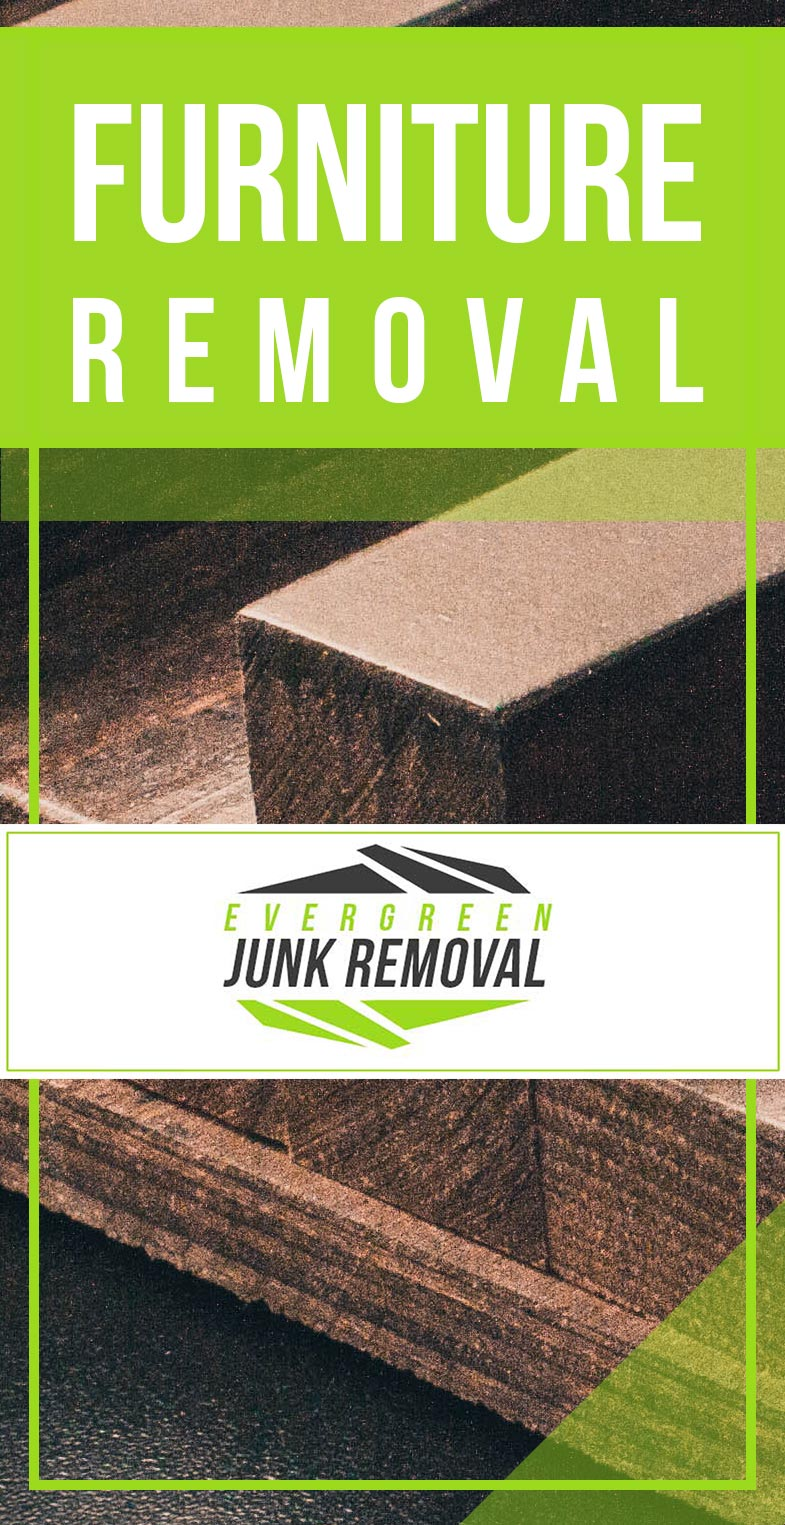 Junk Removal Ocean Ridge Furniture Removal